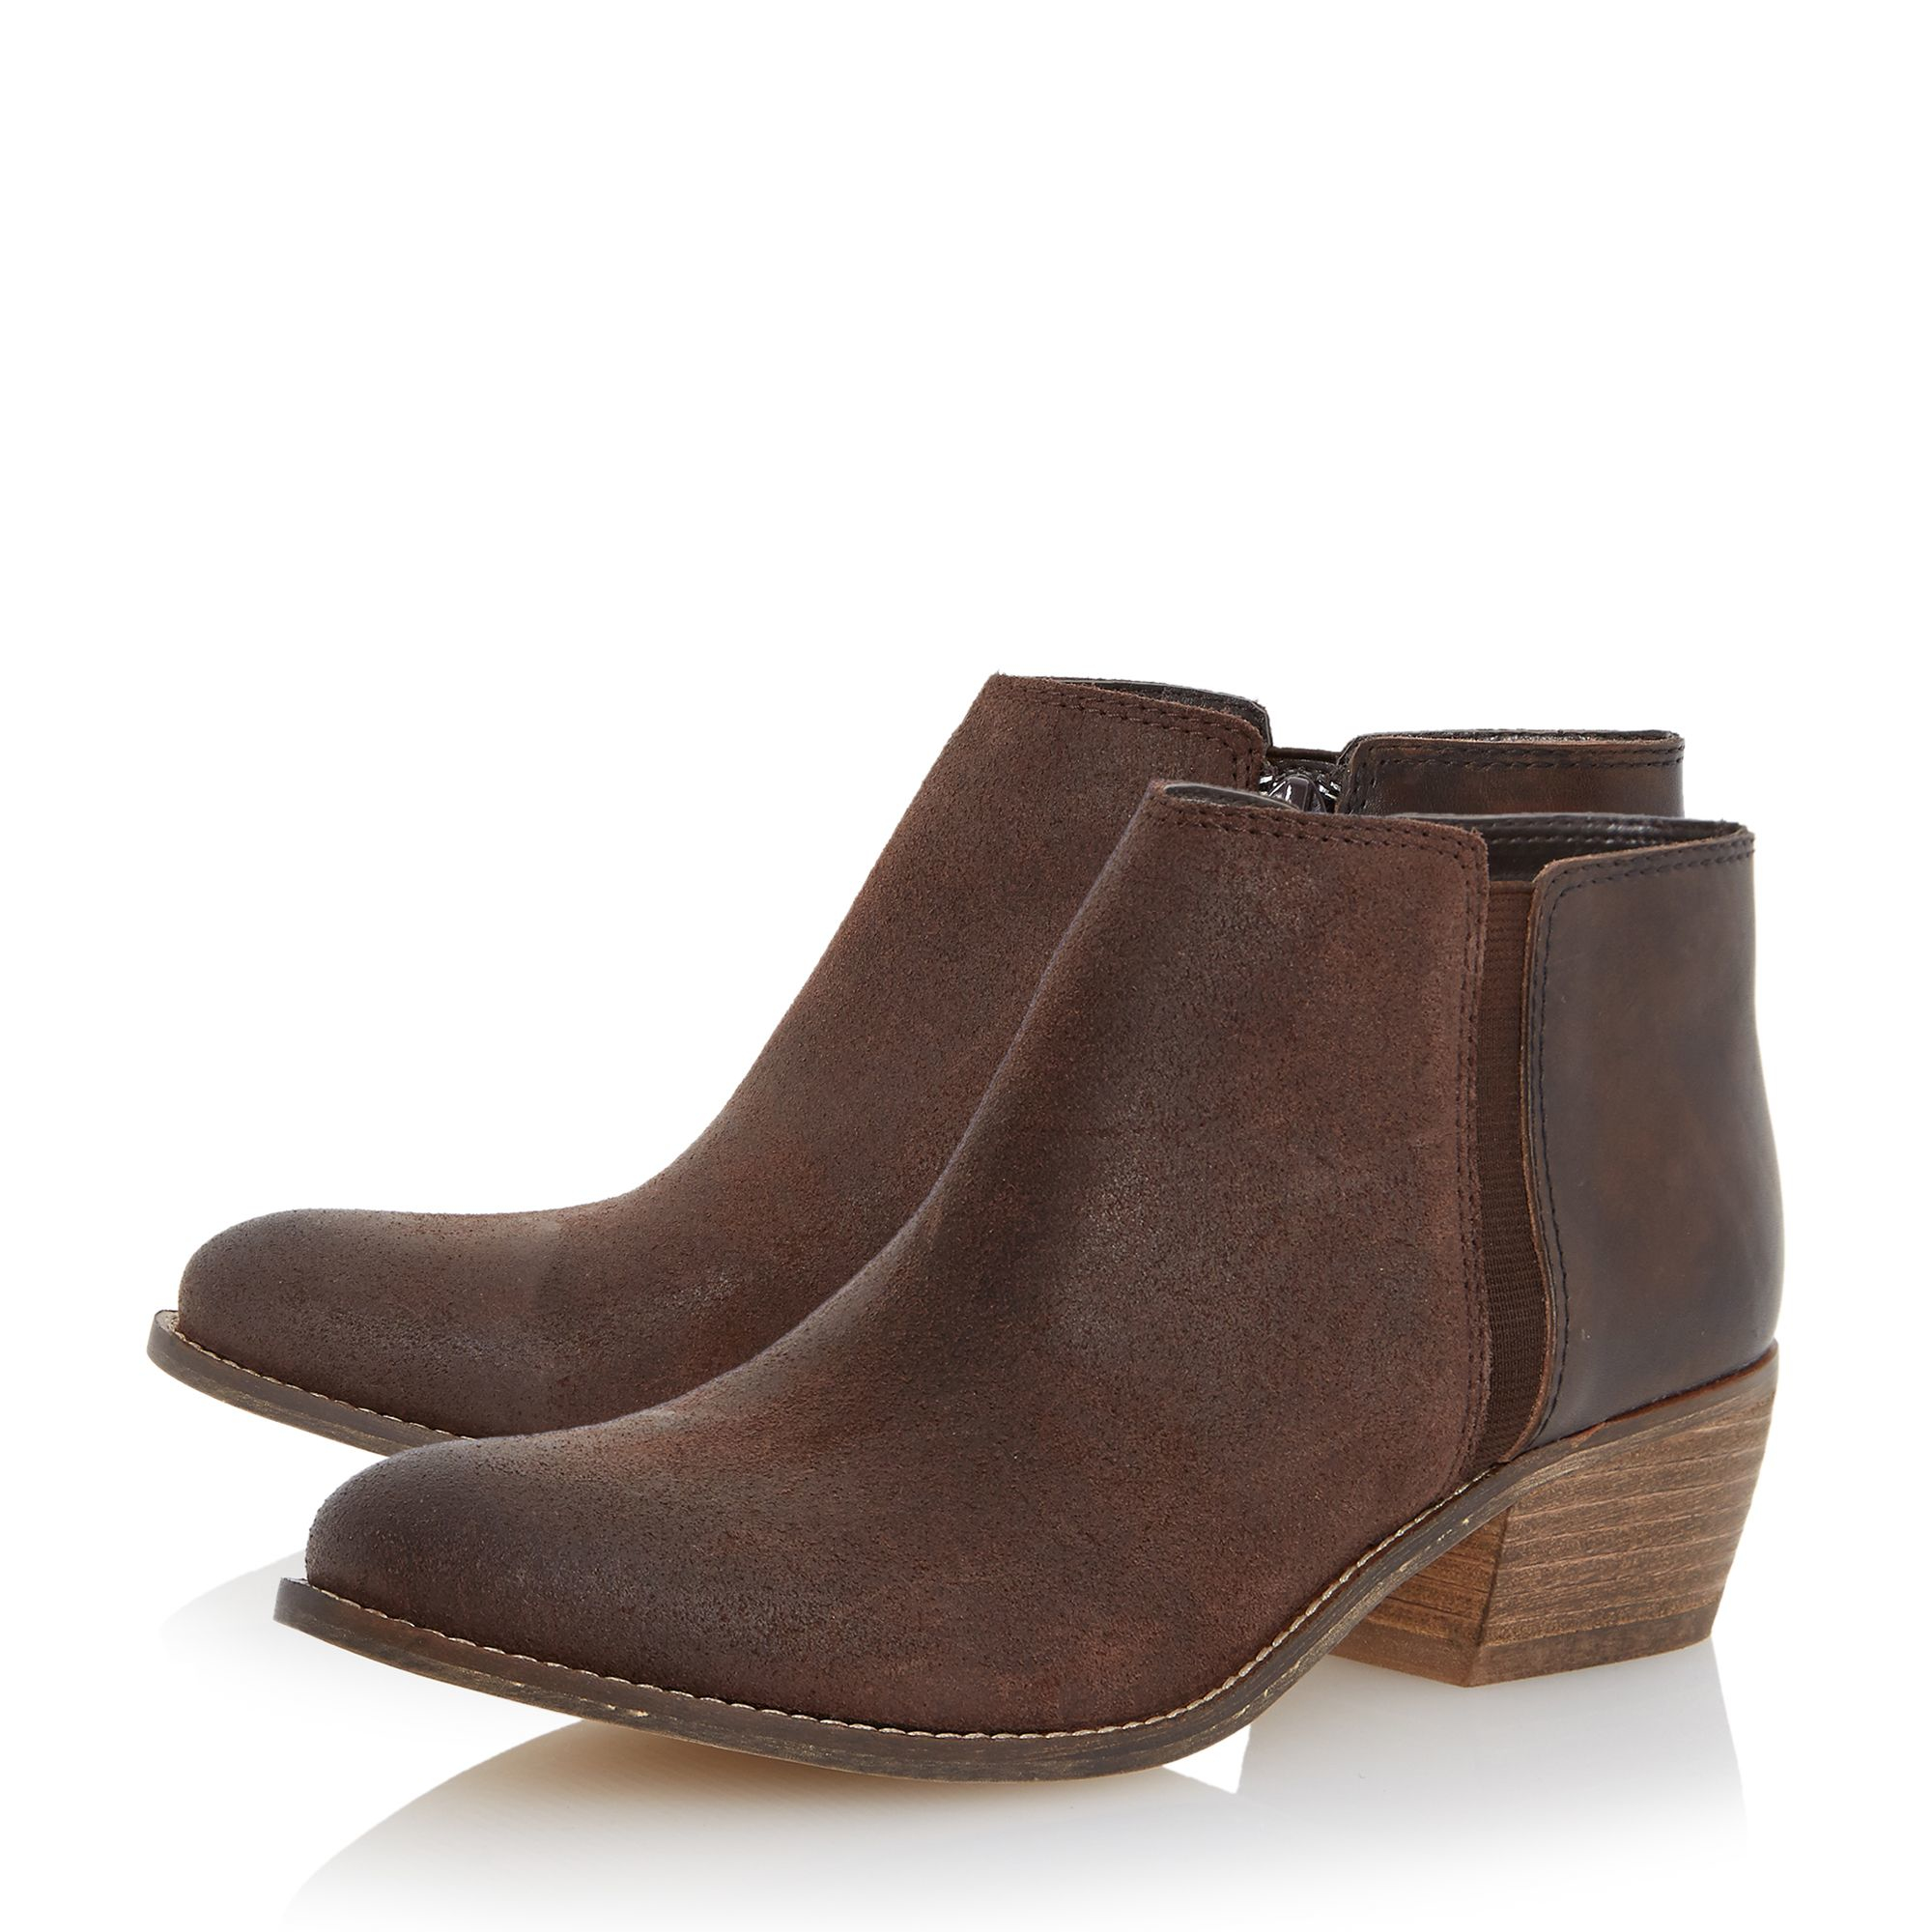 Dune Penelope Low Heel Ankle Boots in Brown | Lyst